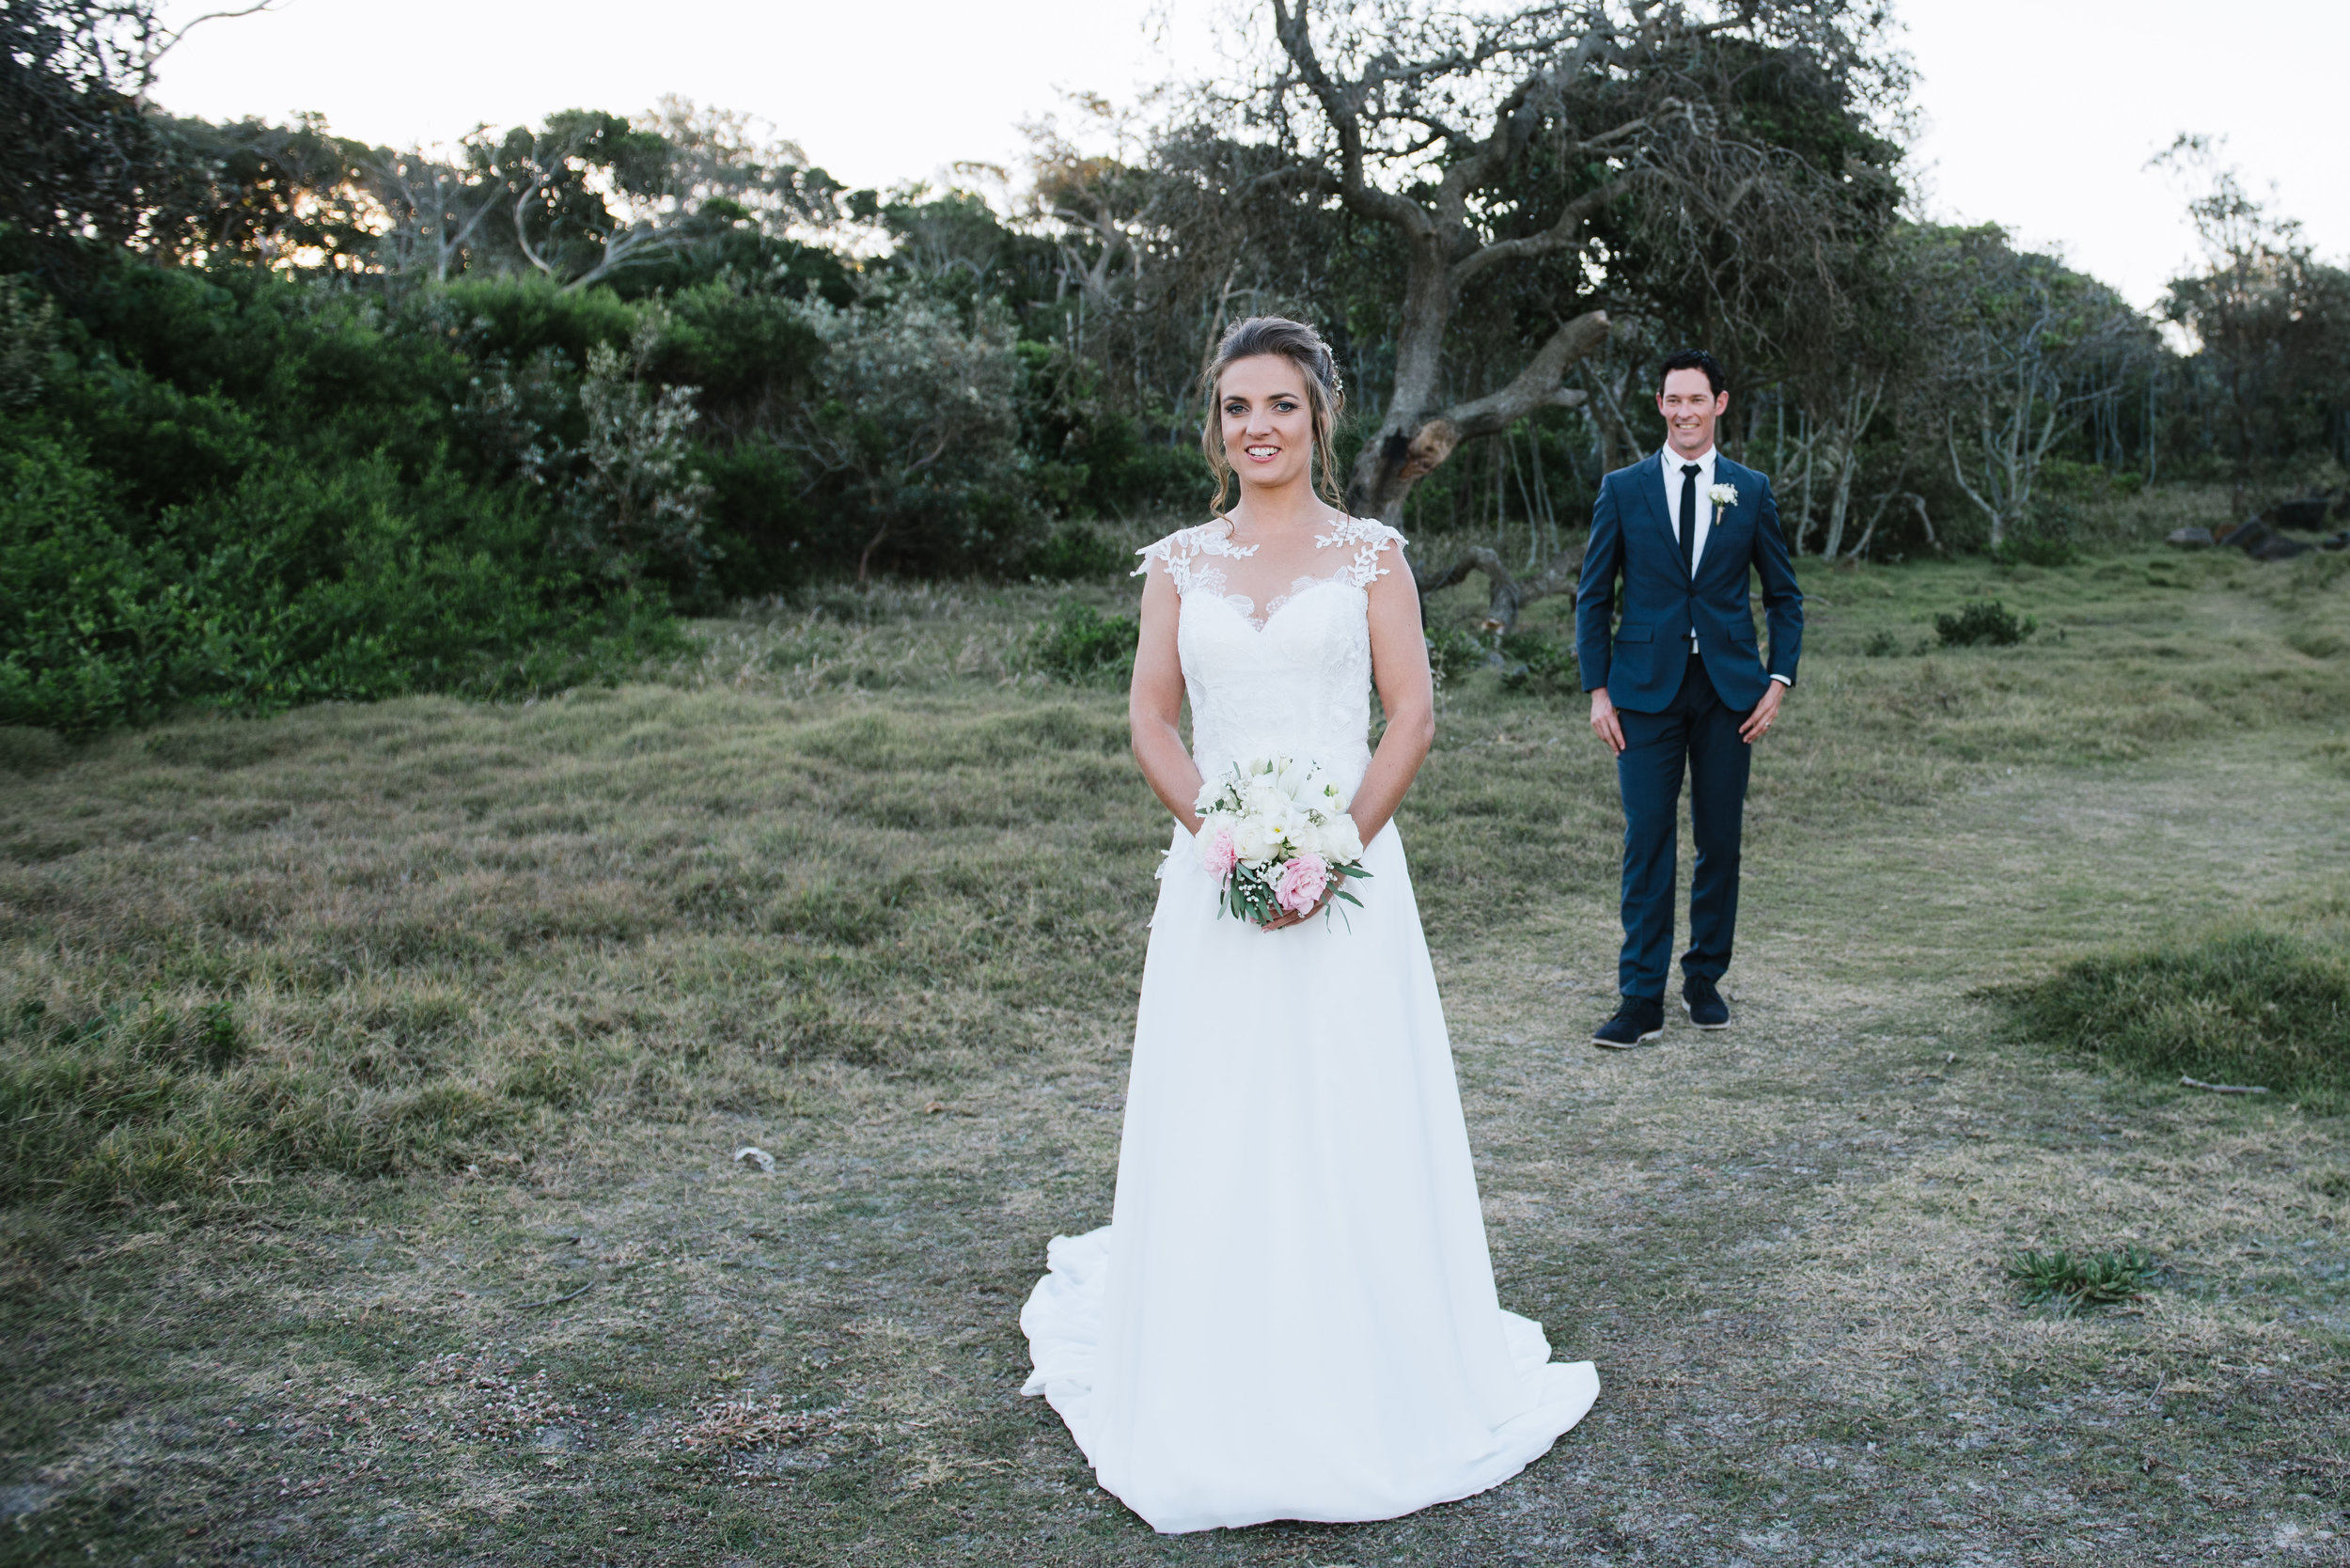 Am and Sam- skyla sage photography weddings, families, byron bay,tweed coast,kingscliff,cabarita,gold coast-518.jpg